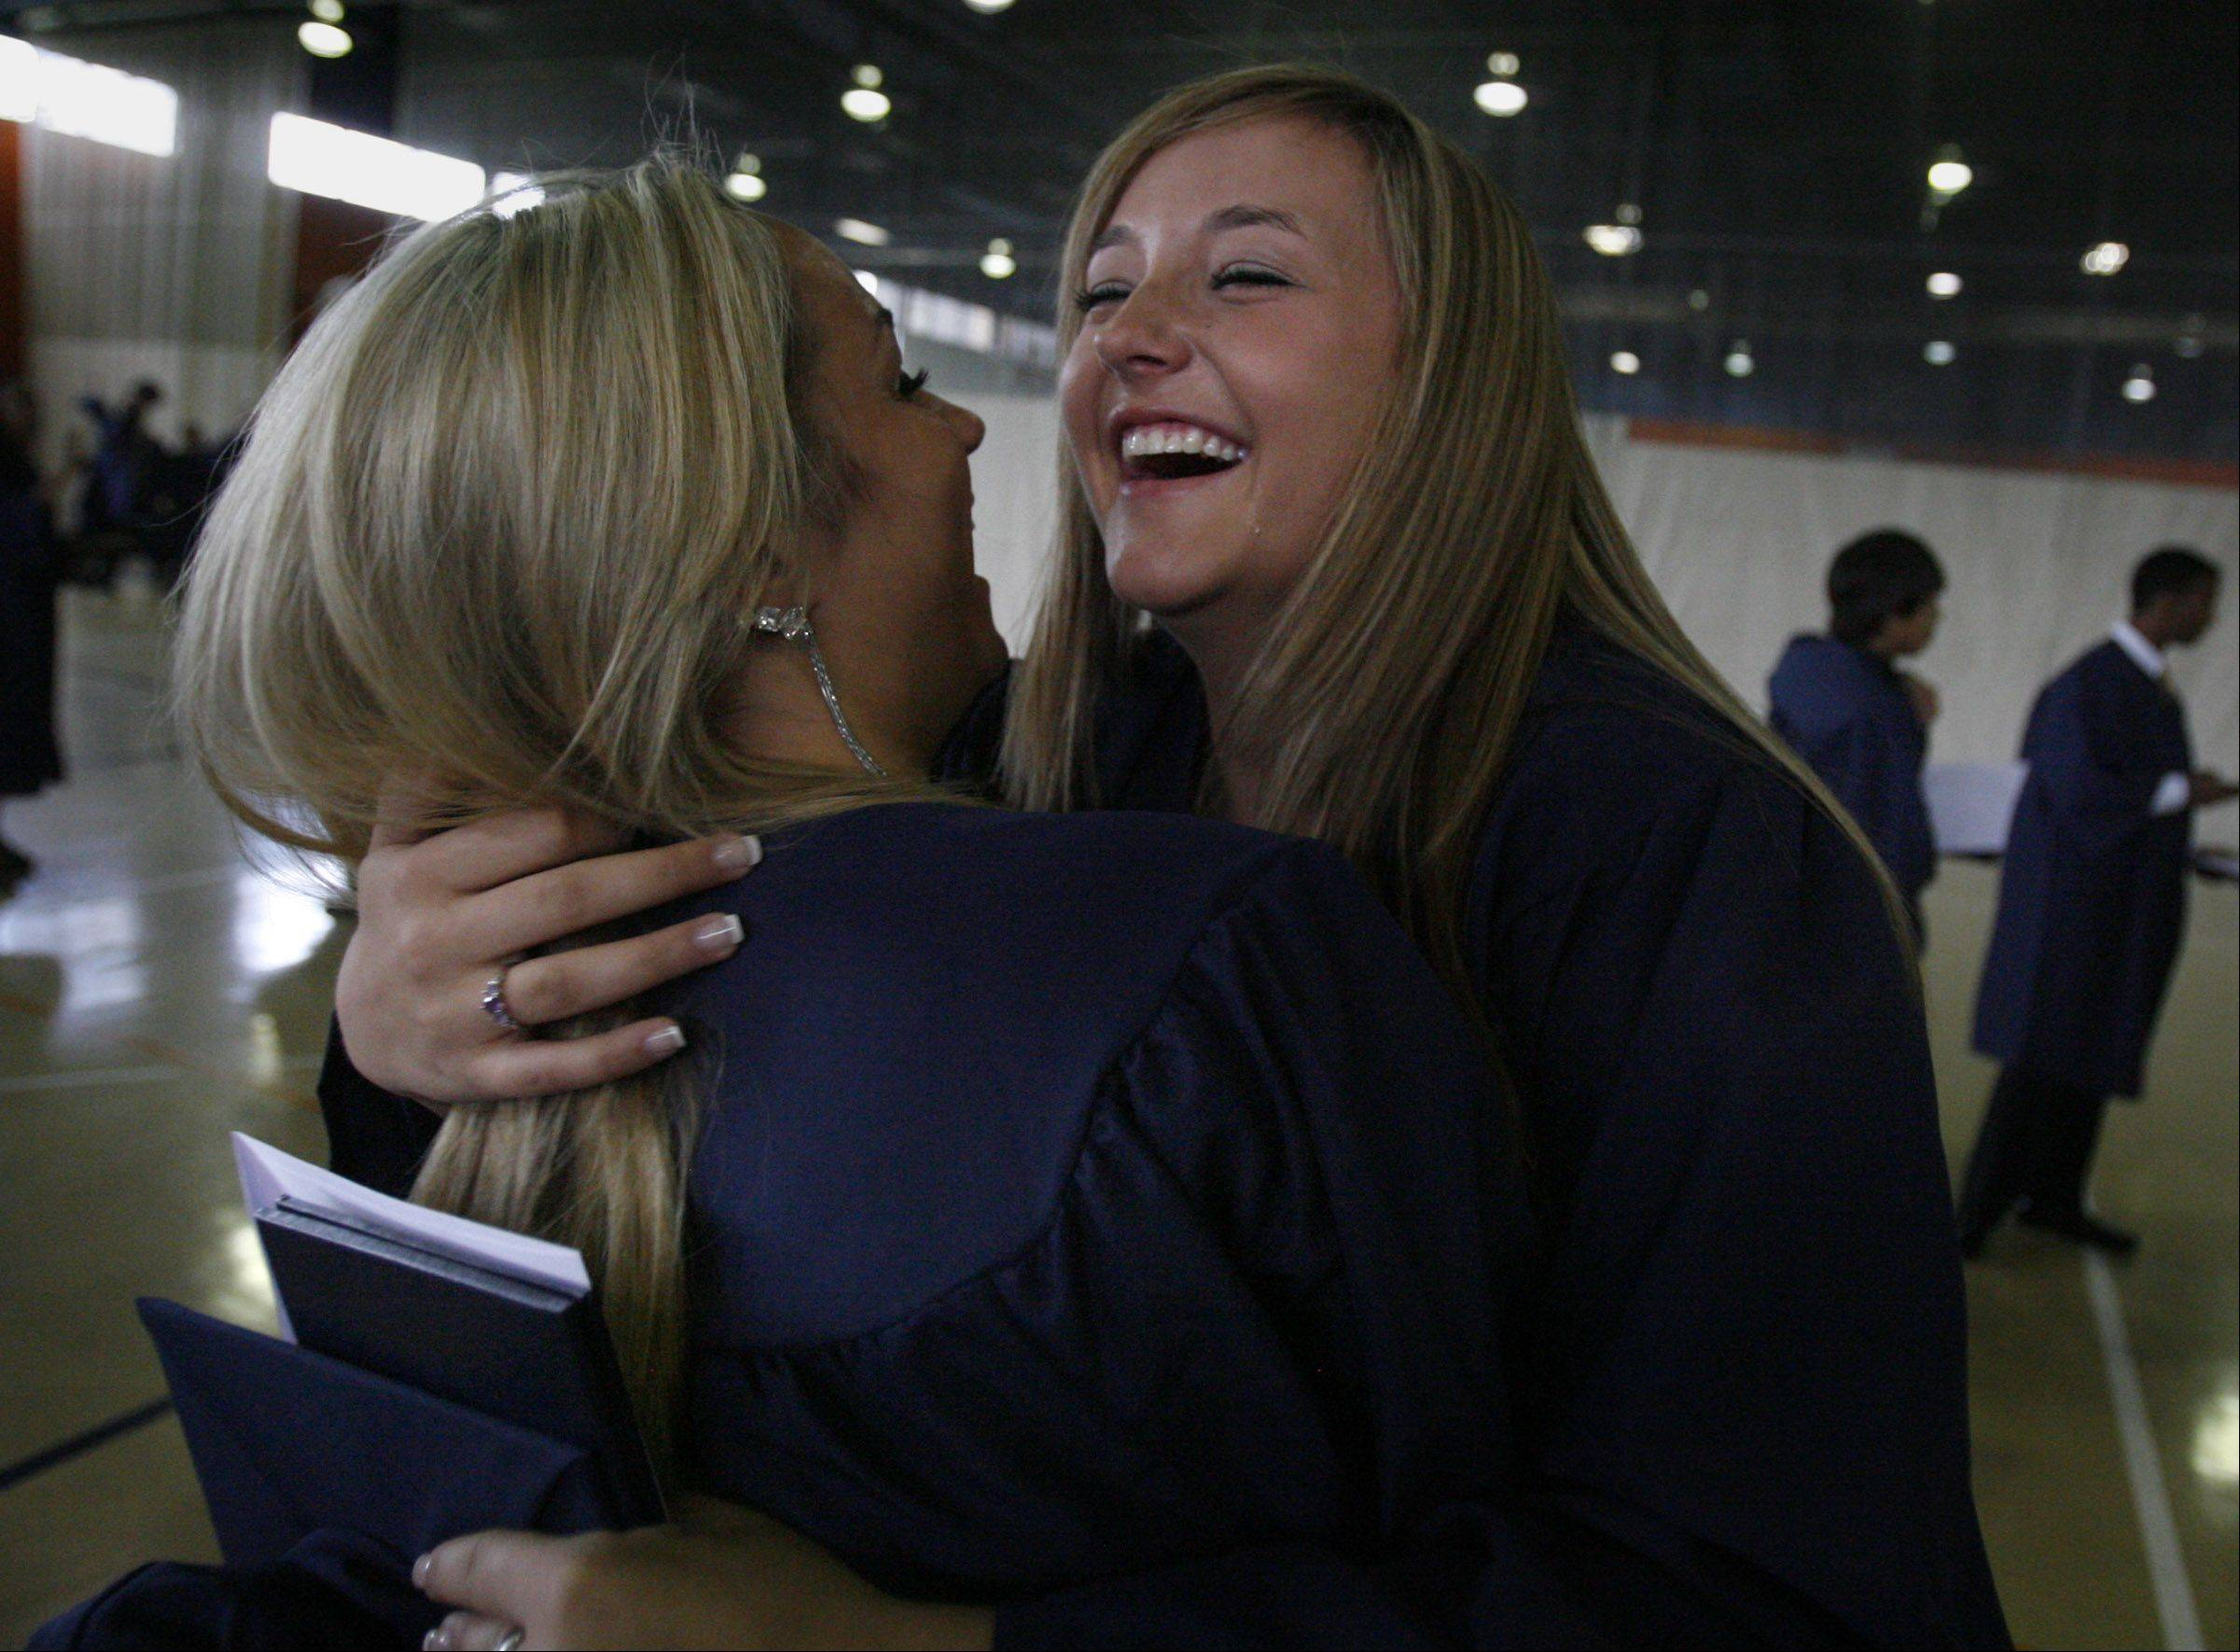 Buffalo Grove High School graduates Kathy Hampton, right, gets a hug from Malinda Lacy, after the school's ceremony in Buffalo Grove Sunday.